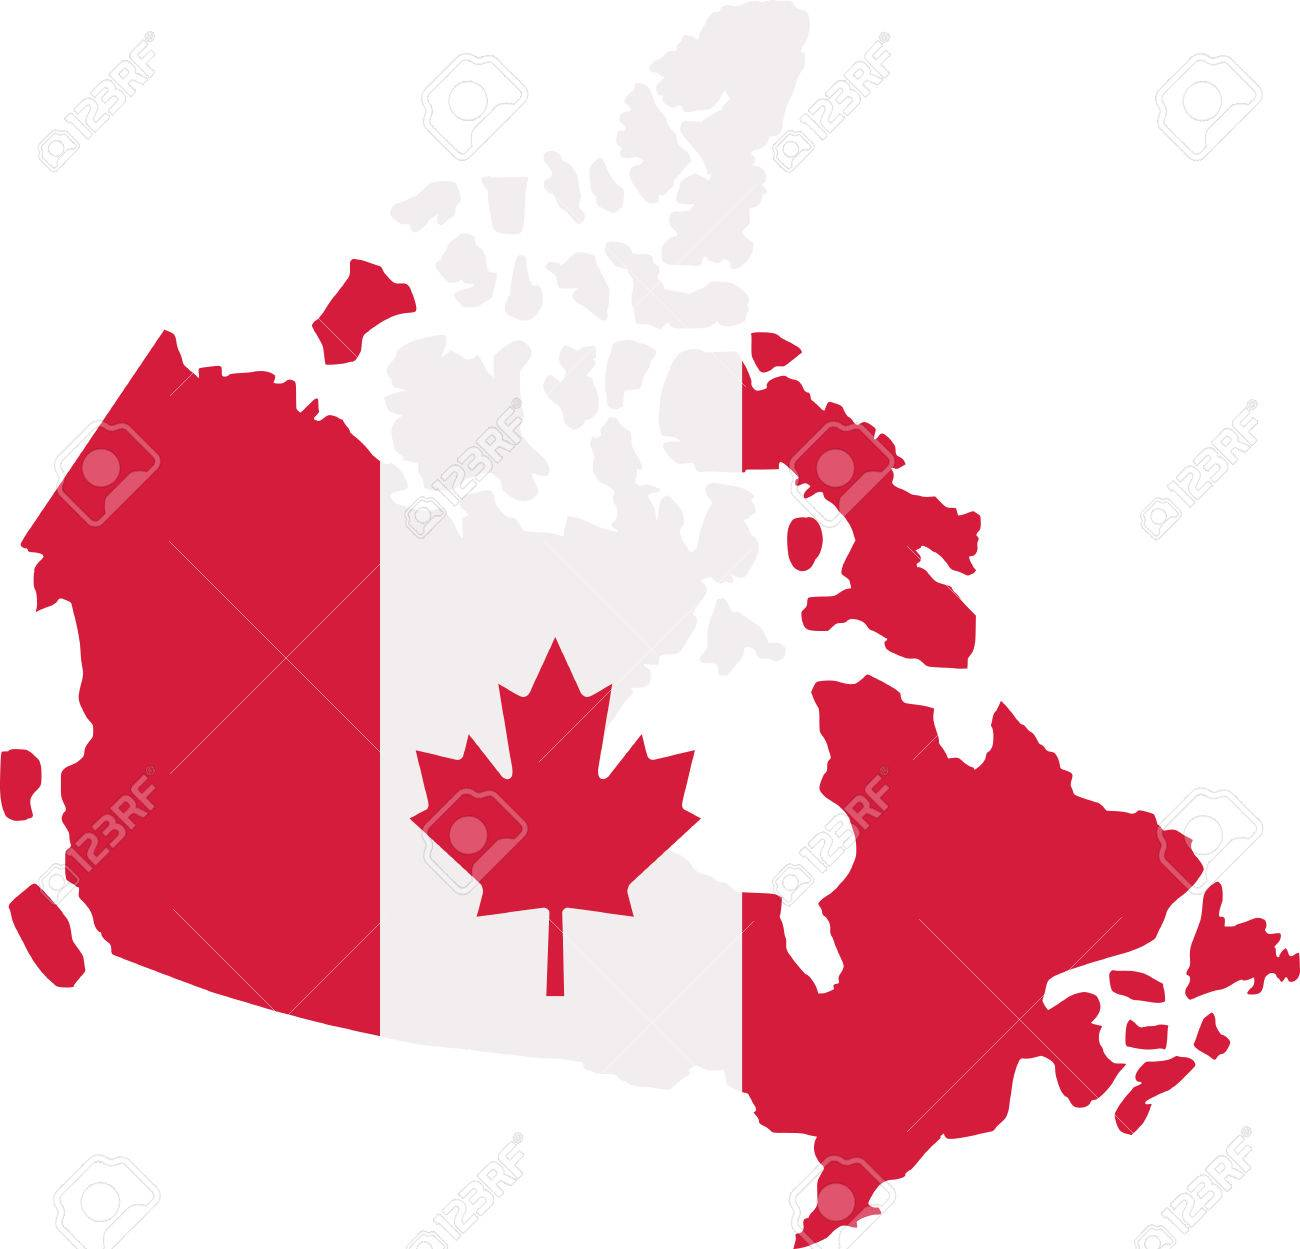 canada map with canadian flag royalty free cliparts vectors and rh 123rf com canada flag vector file canada flag vector image